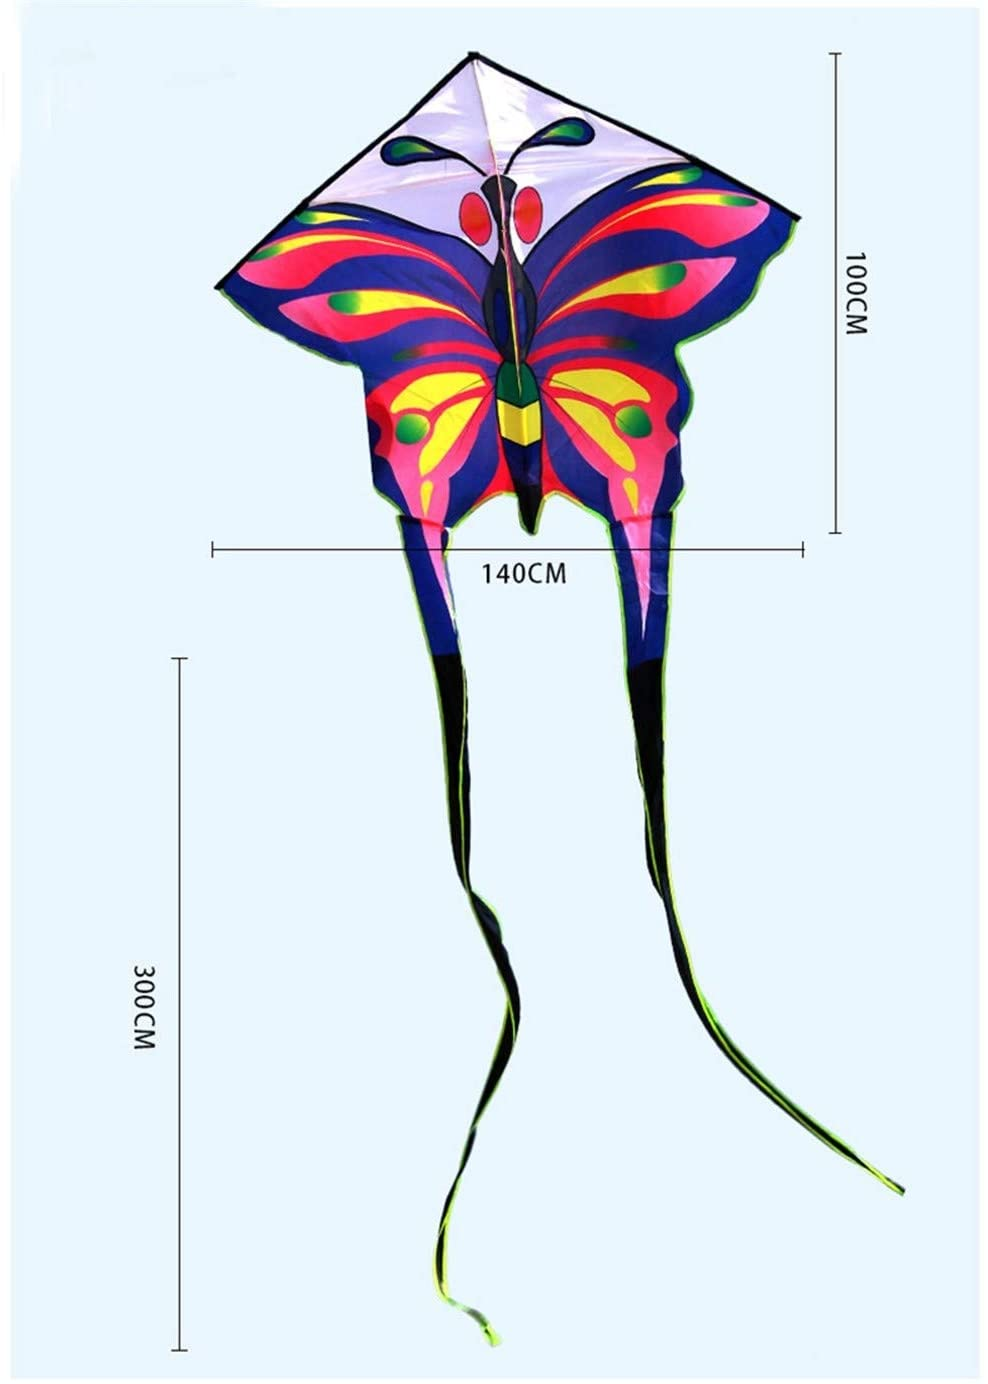 JELO Premium Kite, Kids Kite Fun Kites for Kids Easy to Fly with Outdoor Sports Kite Perfect Childhood Mate (Color : Large Butterfly Kite)